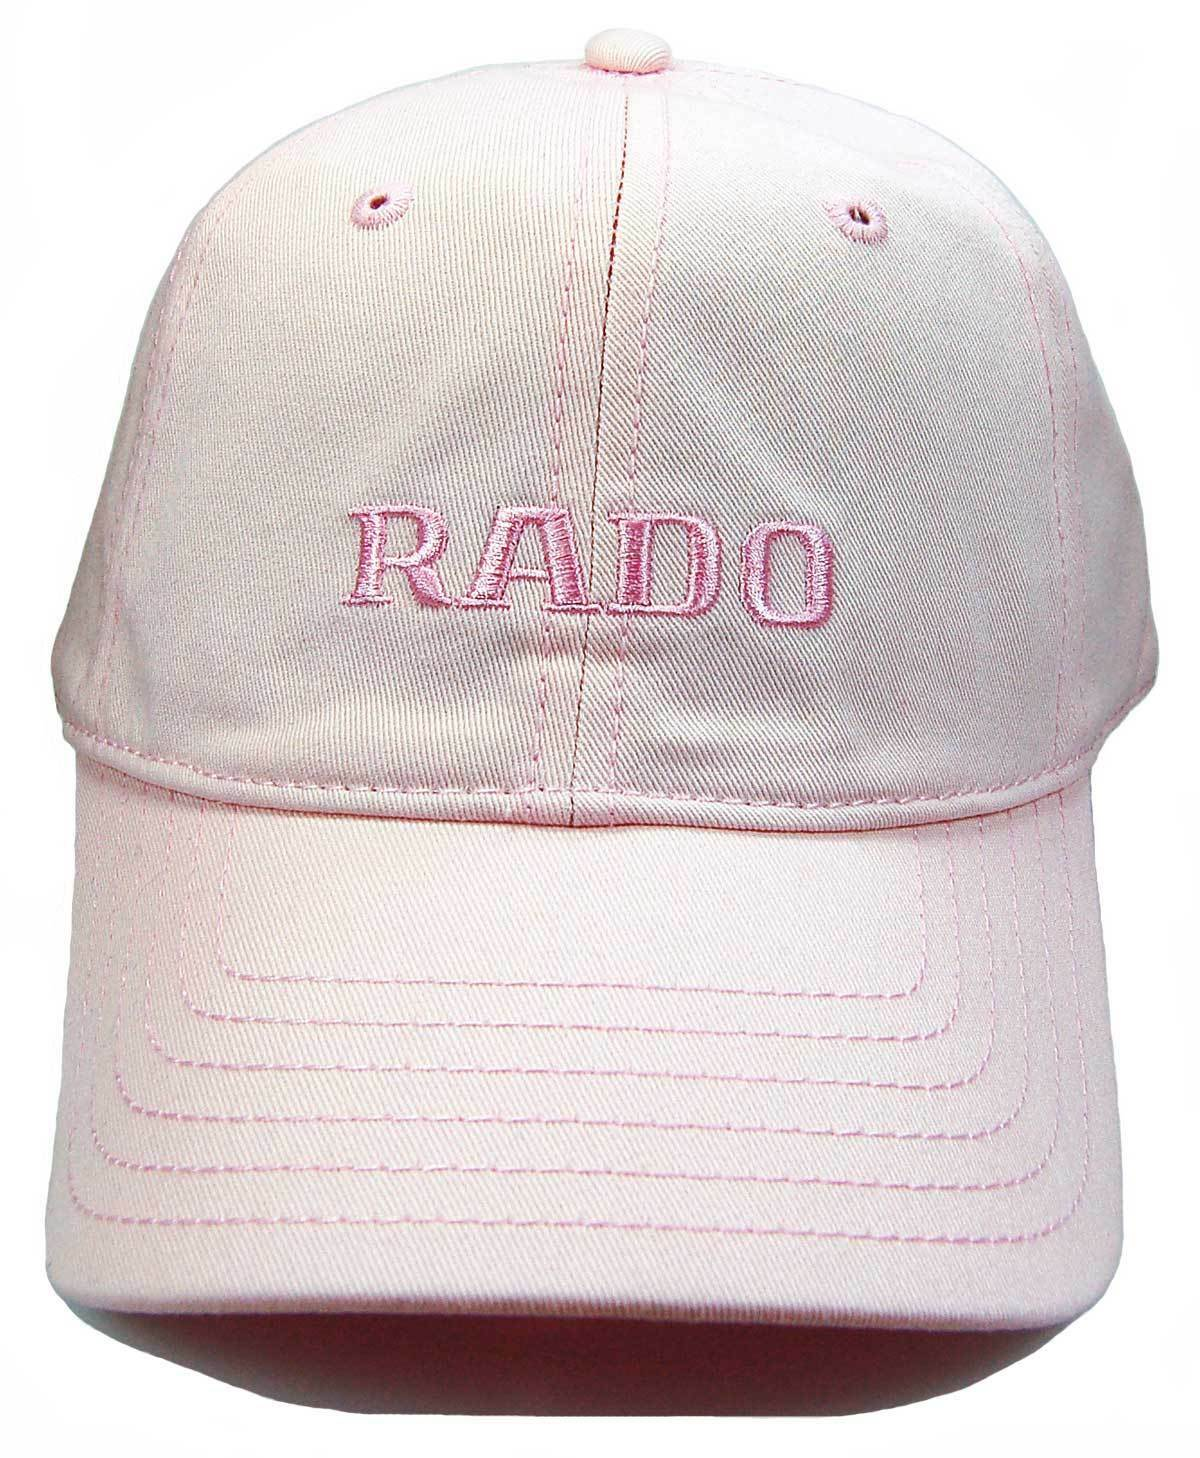 Hat one size fits all NEW Rado Swiss Watches Pink Baseball Cap